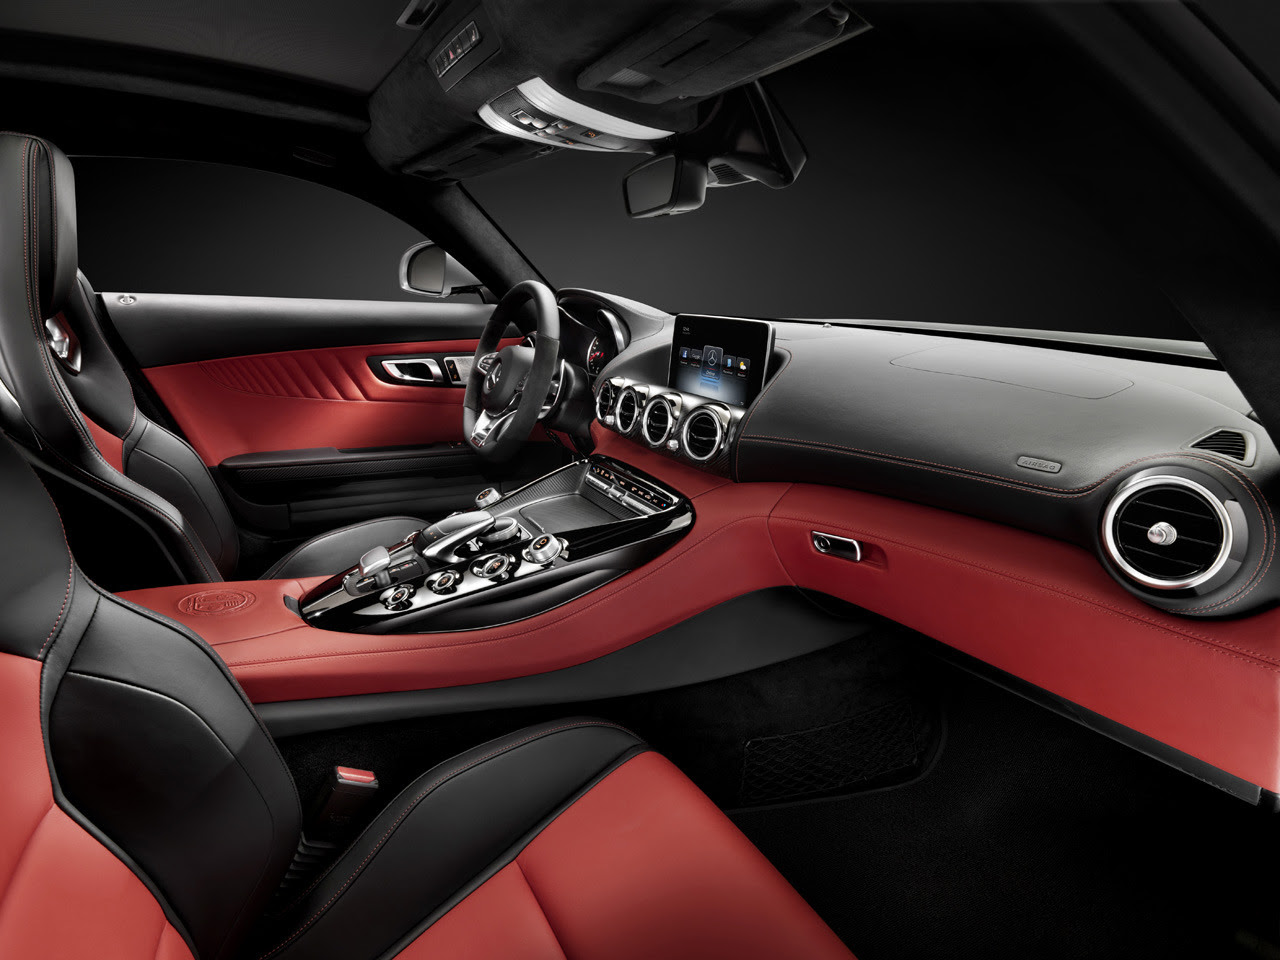 Mercedes-AMG GT Interior Photo Gallery - Autoblog